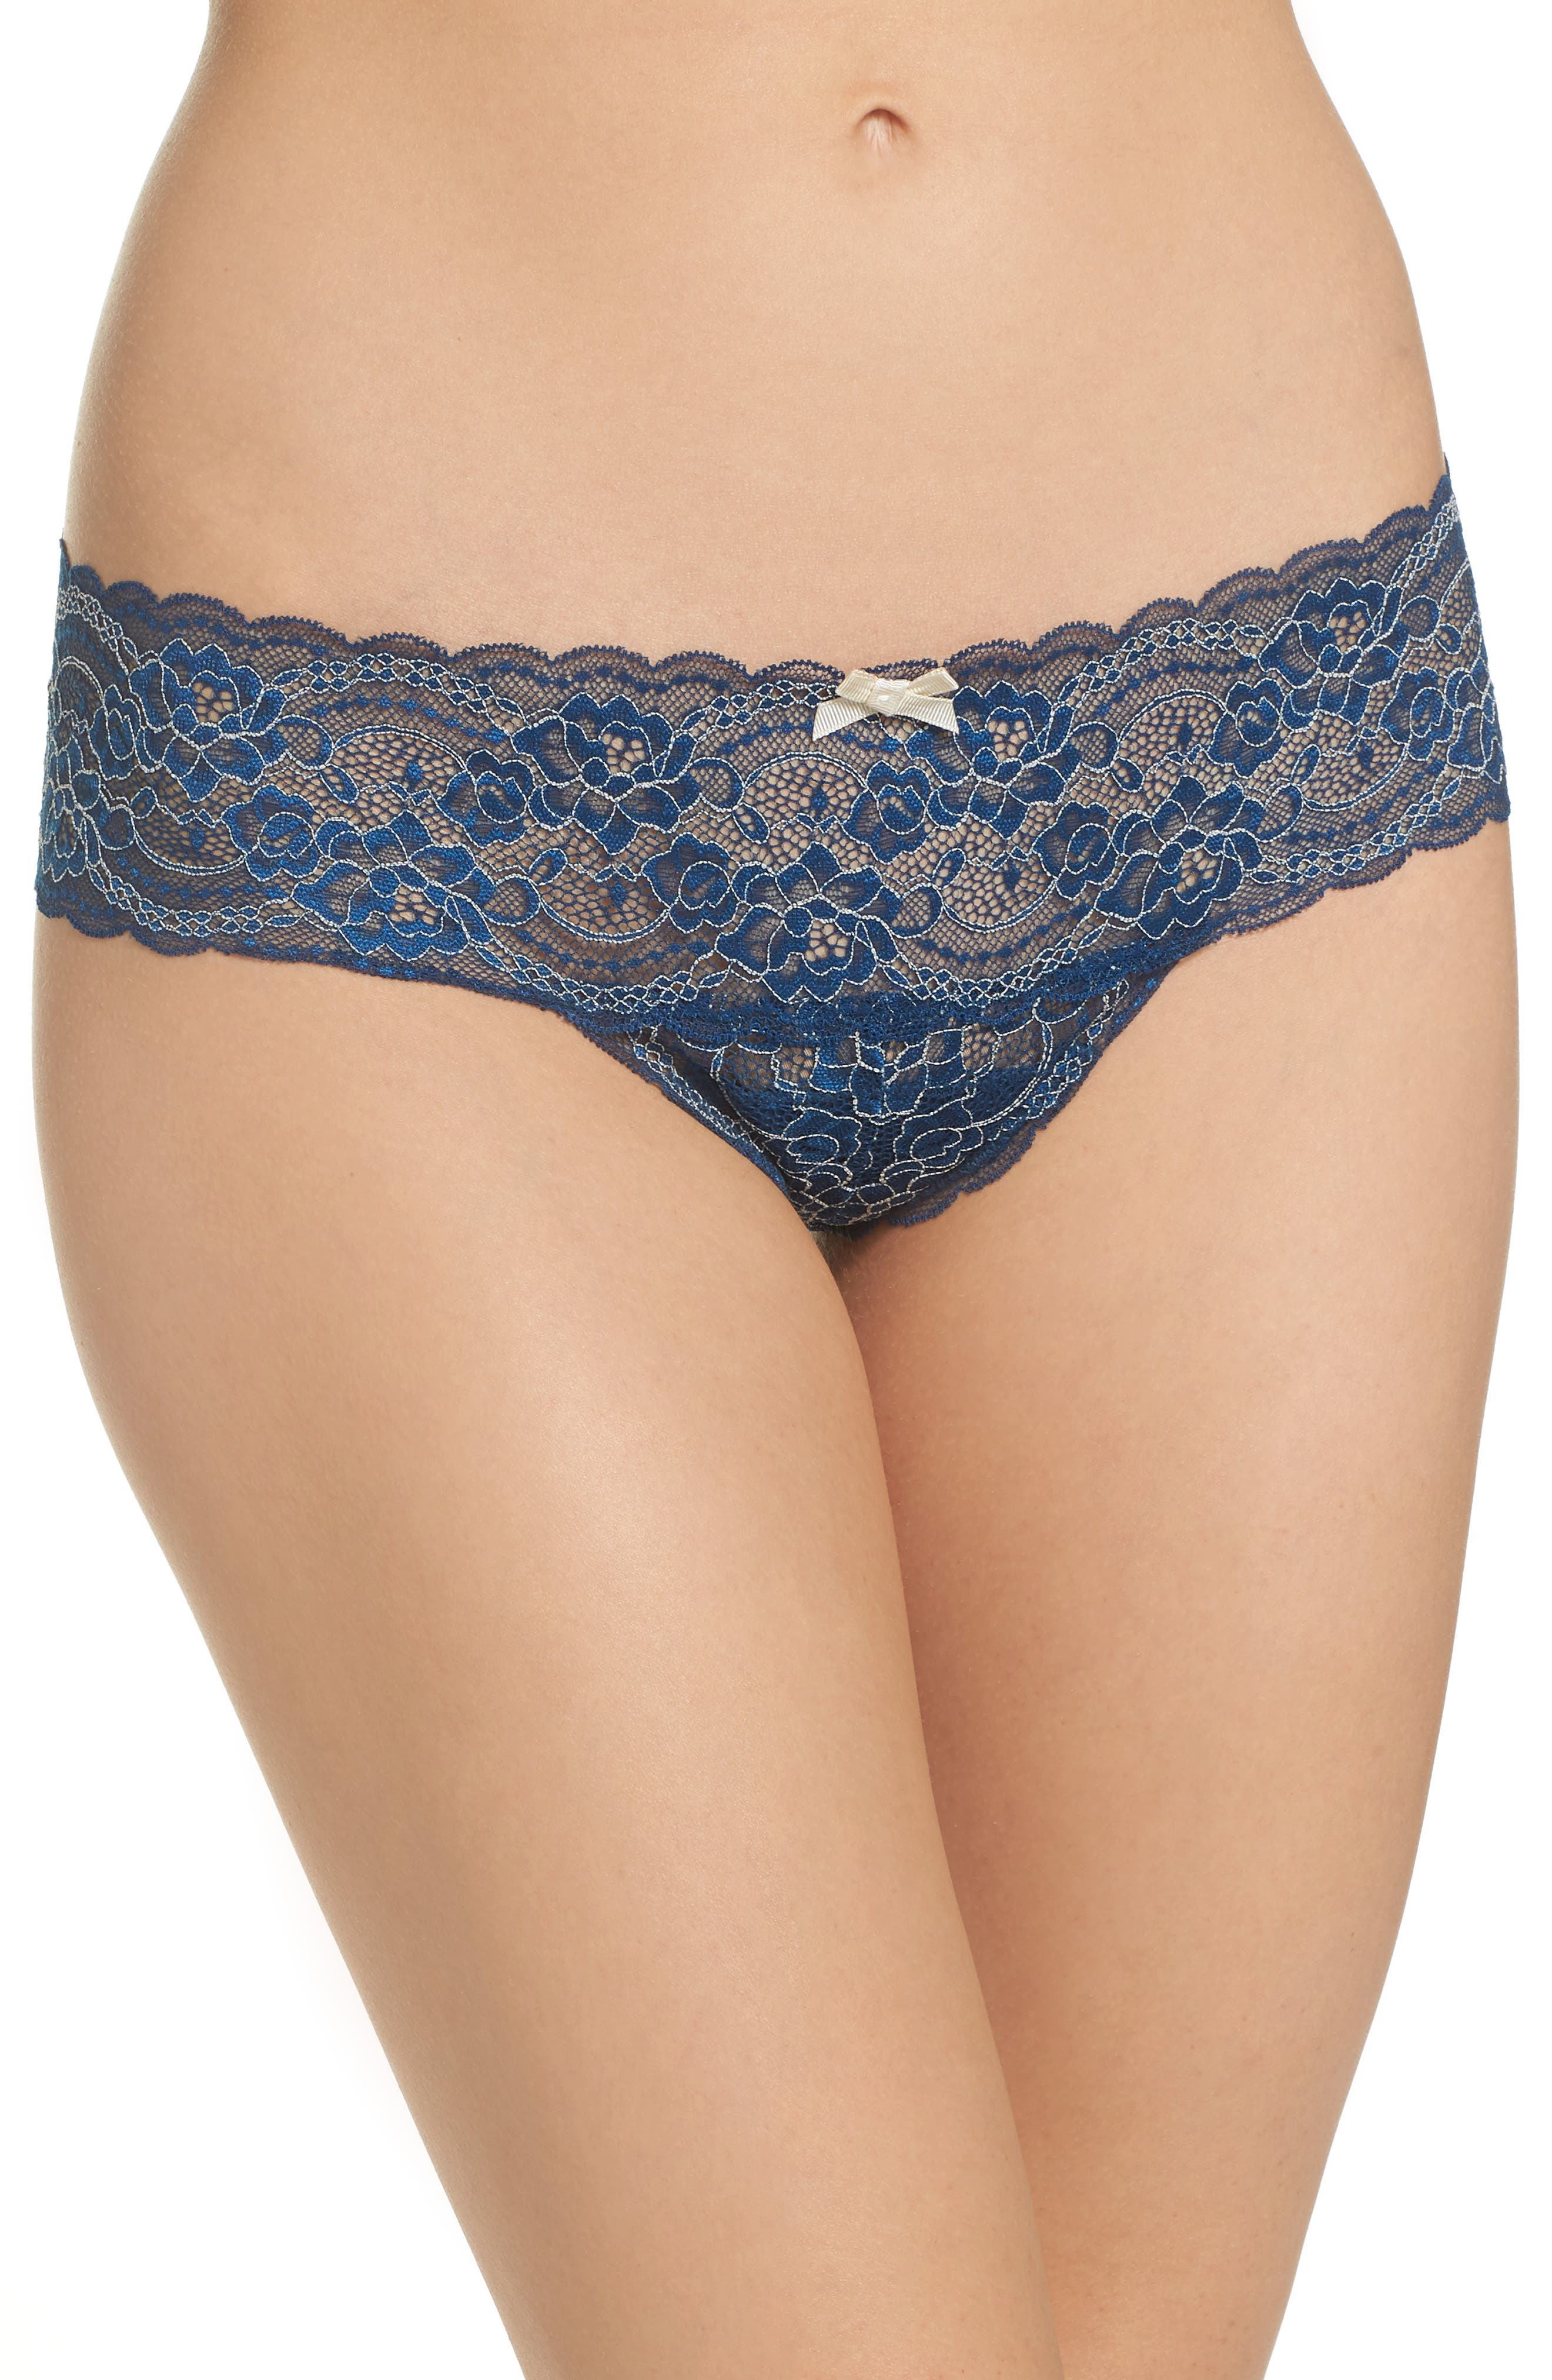 SKARLETT BLUE 'OBSESSED' LACE THONG